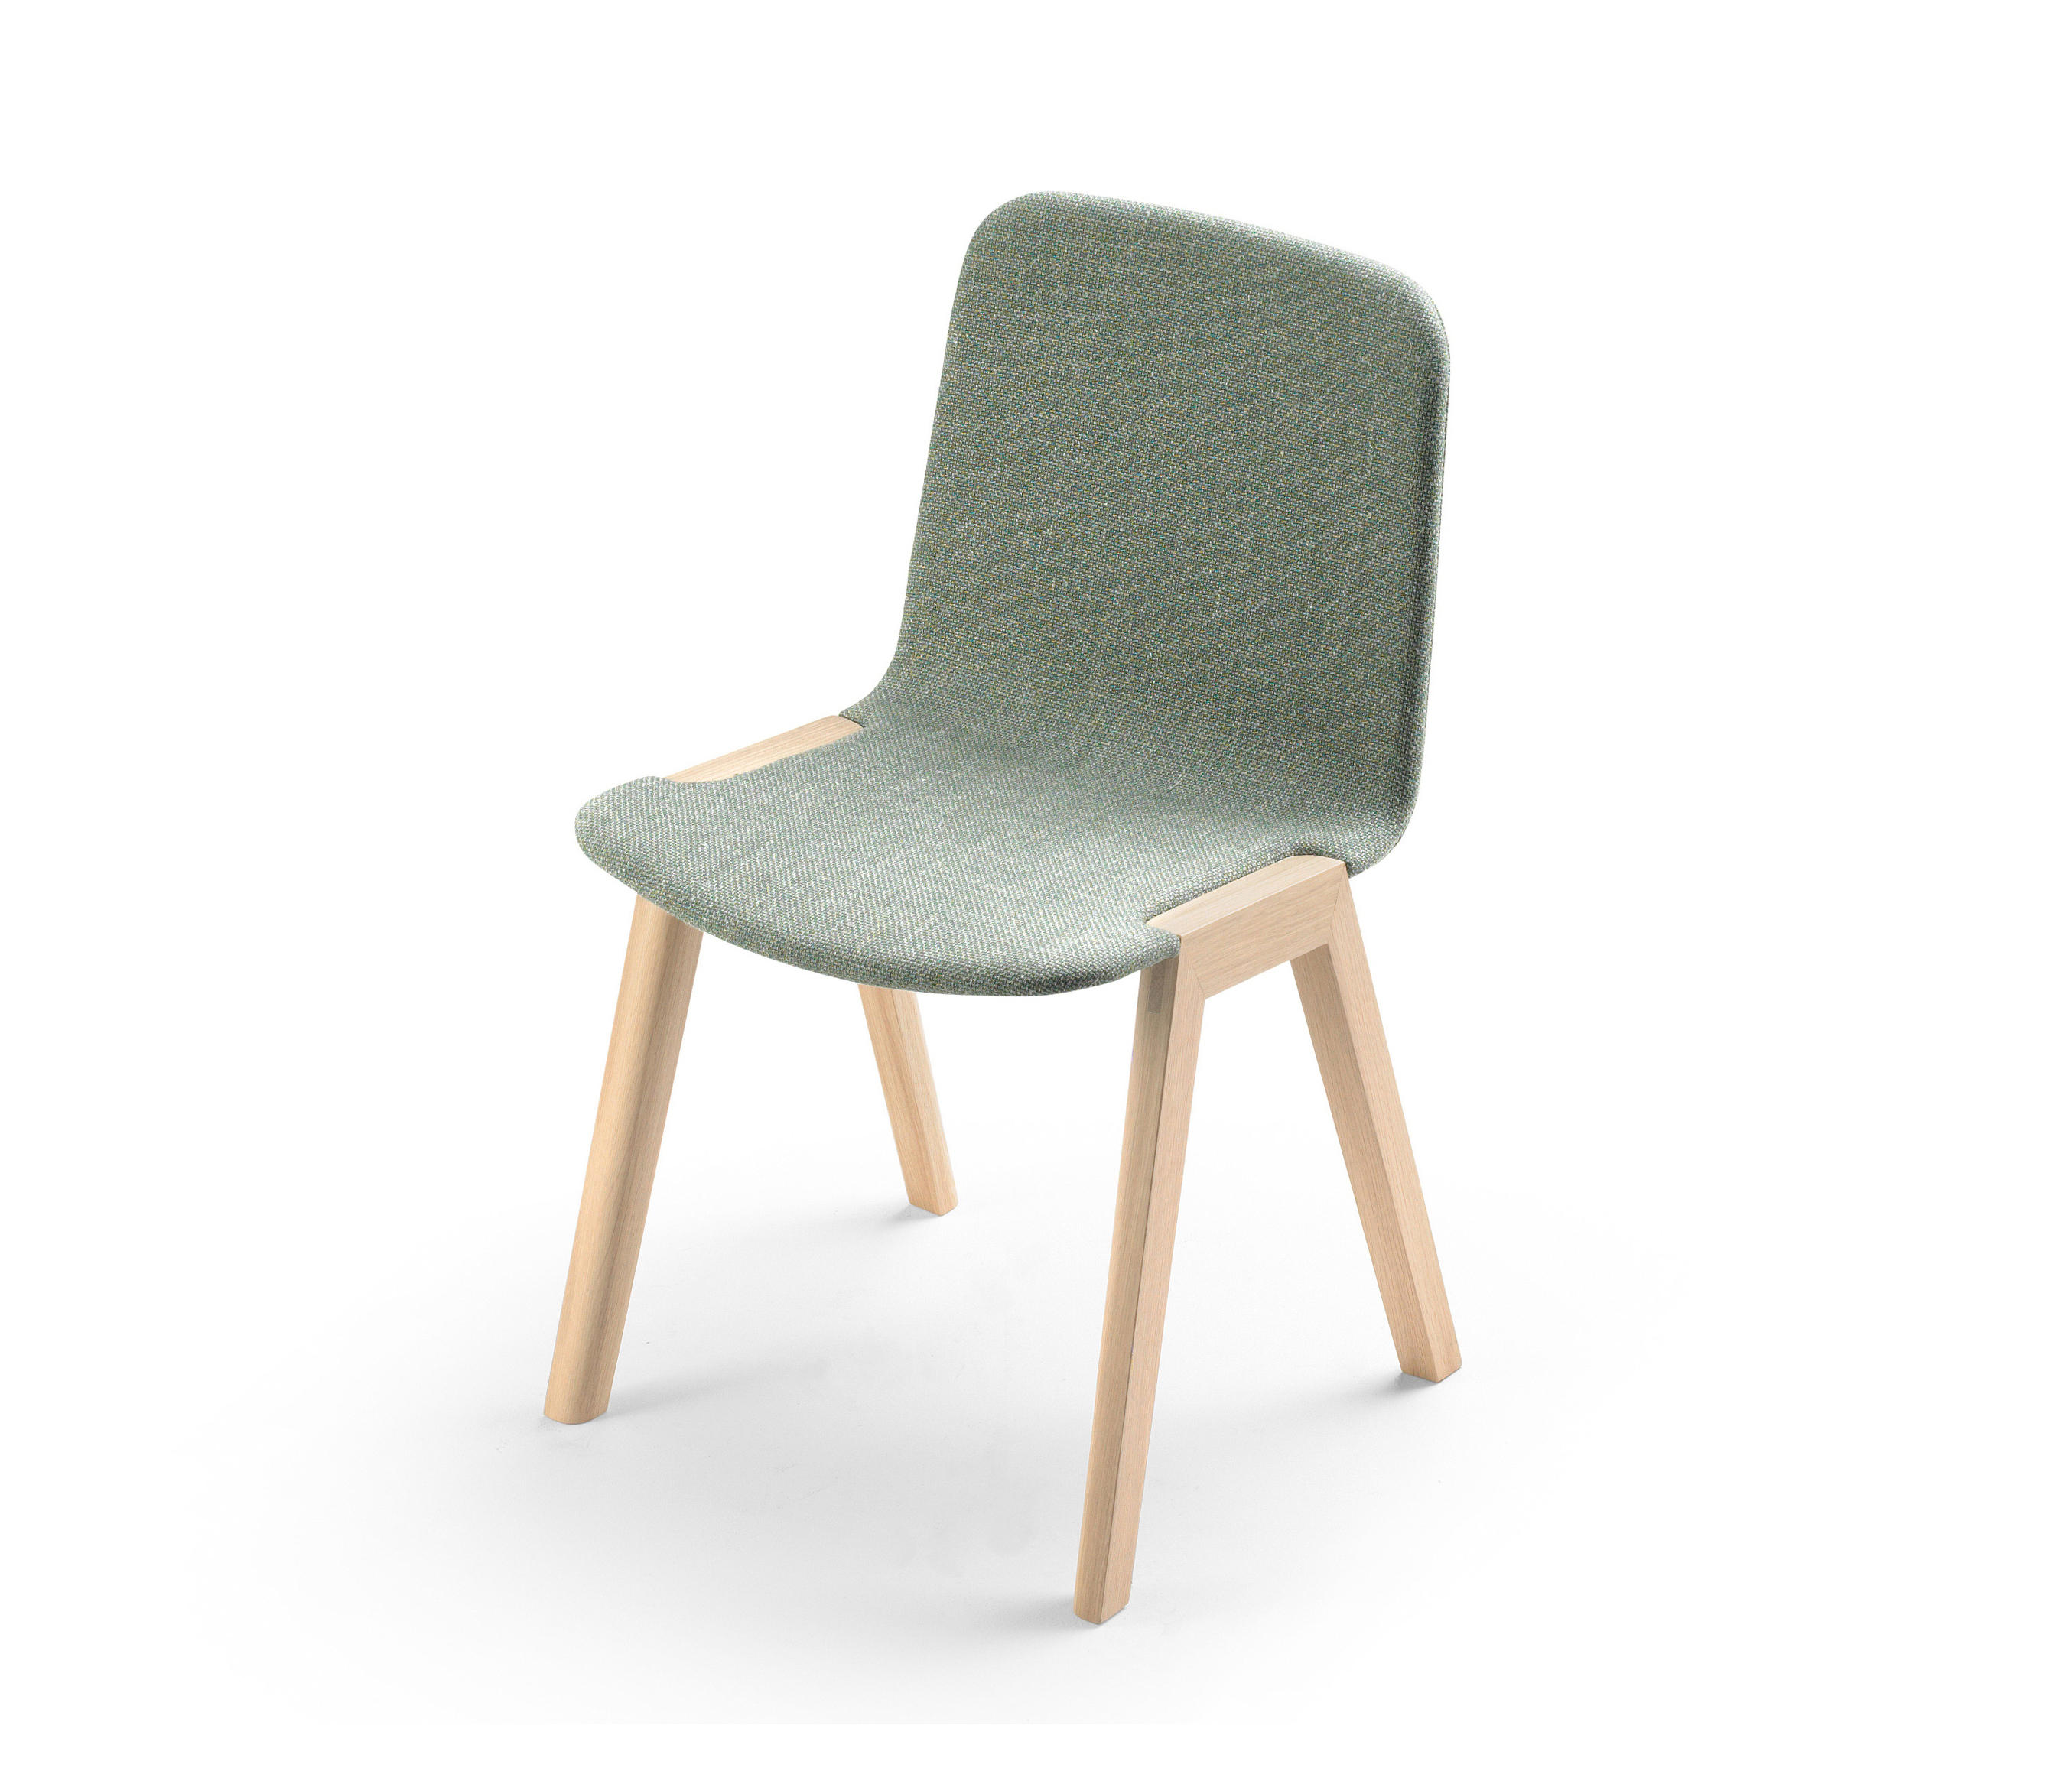 Alki Chaises Heldu Chair Chairs From Alki Architonic